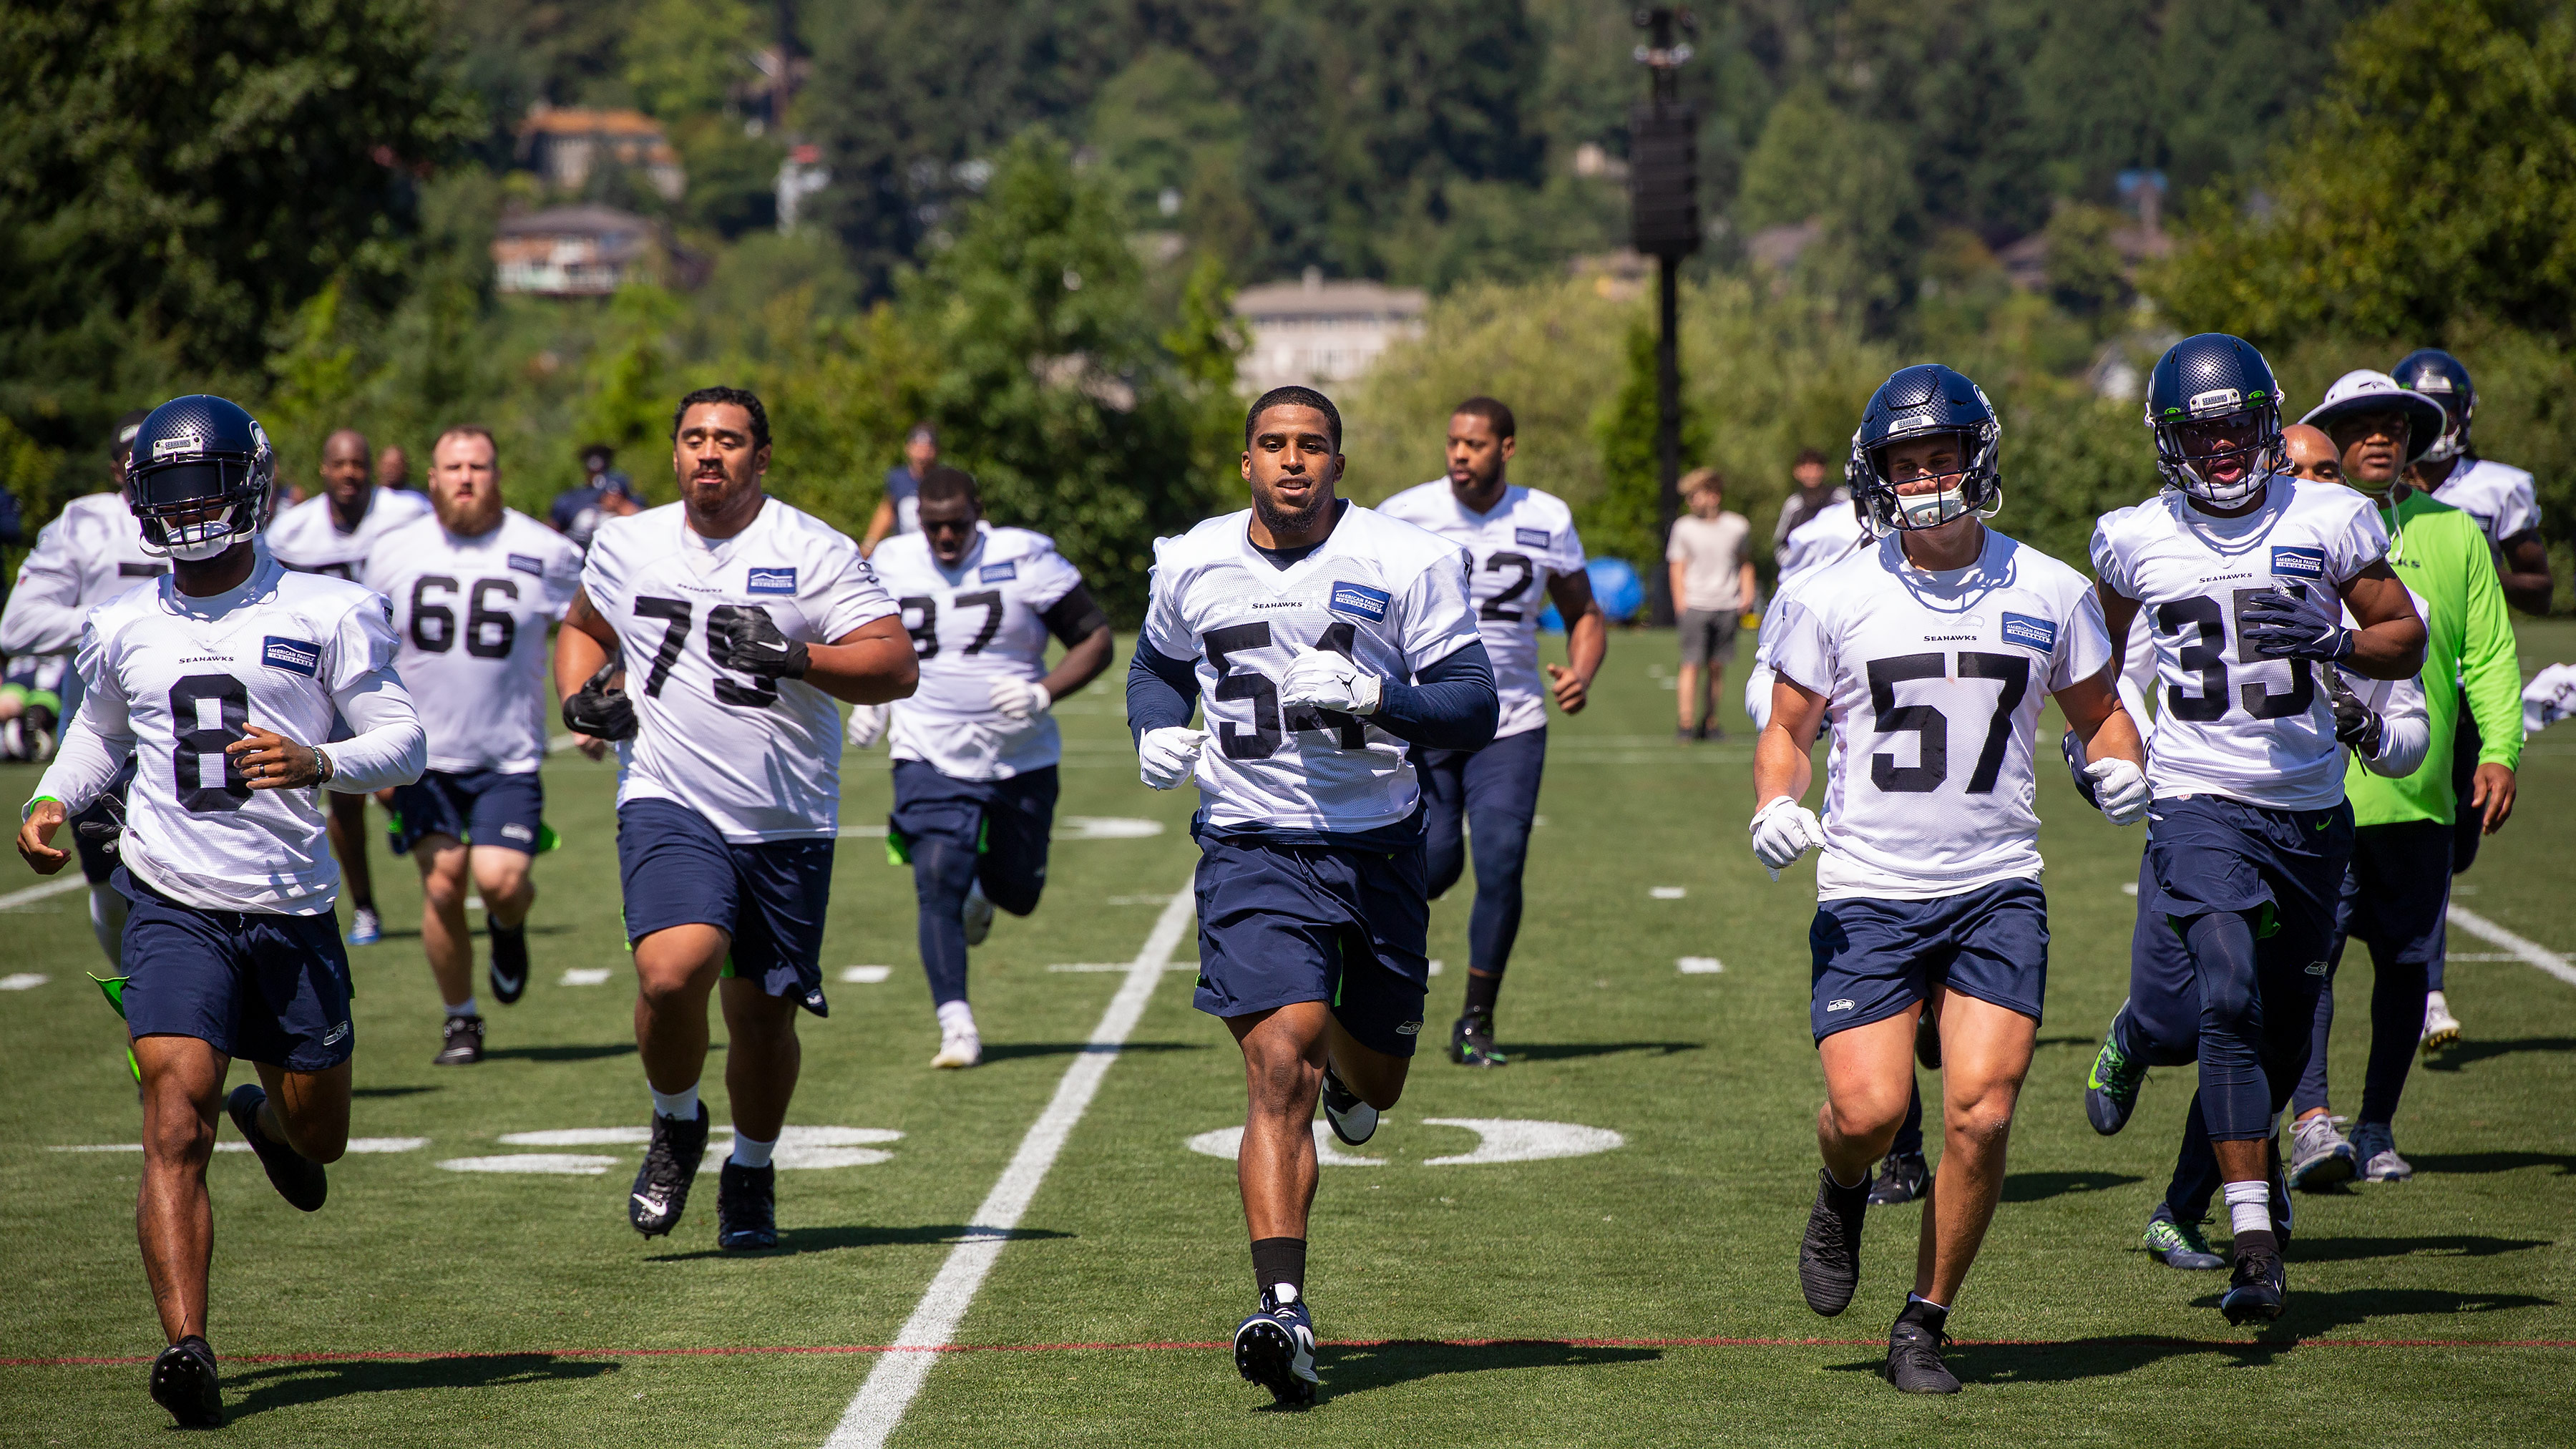 Seattle Seahawks players running at the VMAC